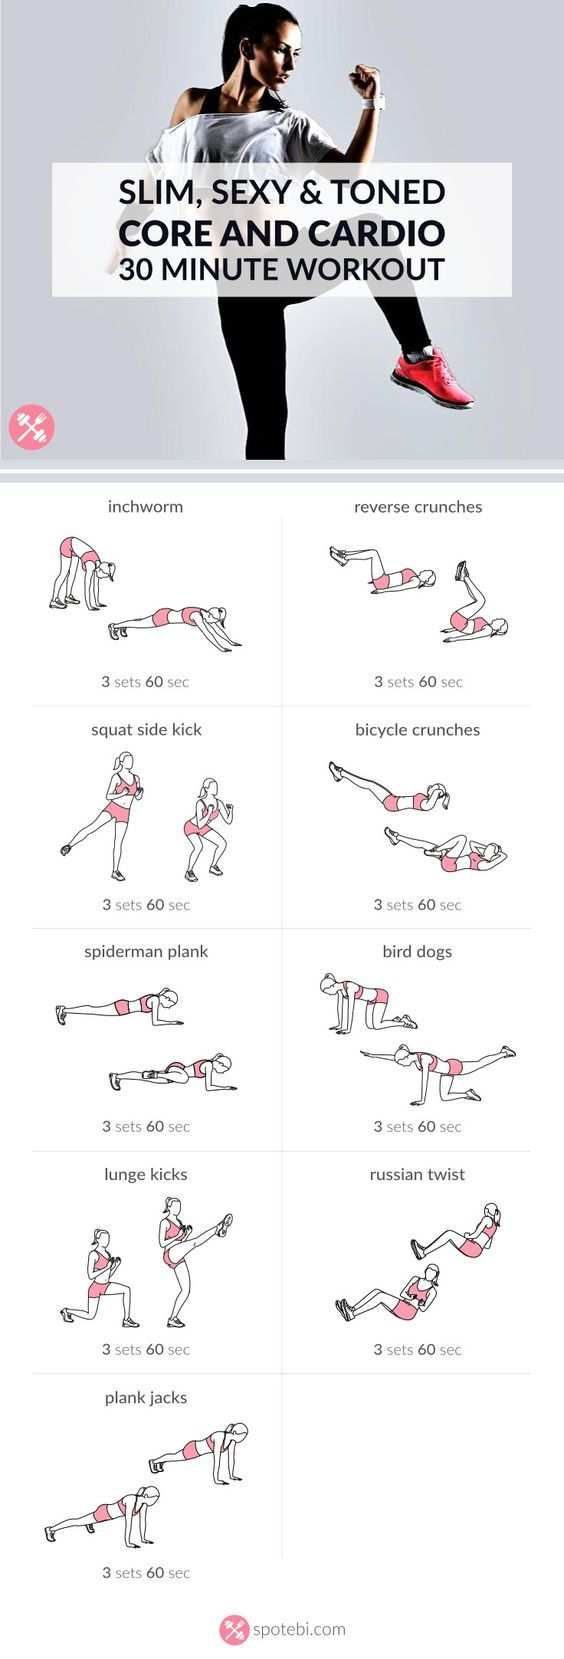 Work your abs, obliques and lower back with this core and cardio workout. Increase your aerobic fitness at home and get a toned, sculpted and slim belly. http://www.spotebi.com/workout-routines/bodyweight-at-home-core-and-cardio-workout/Work you